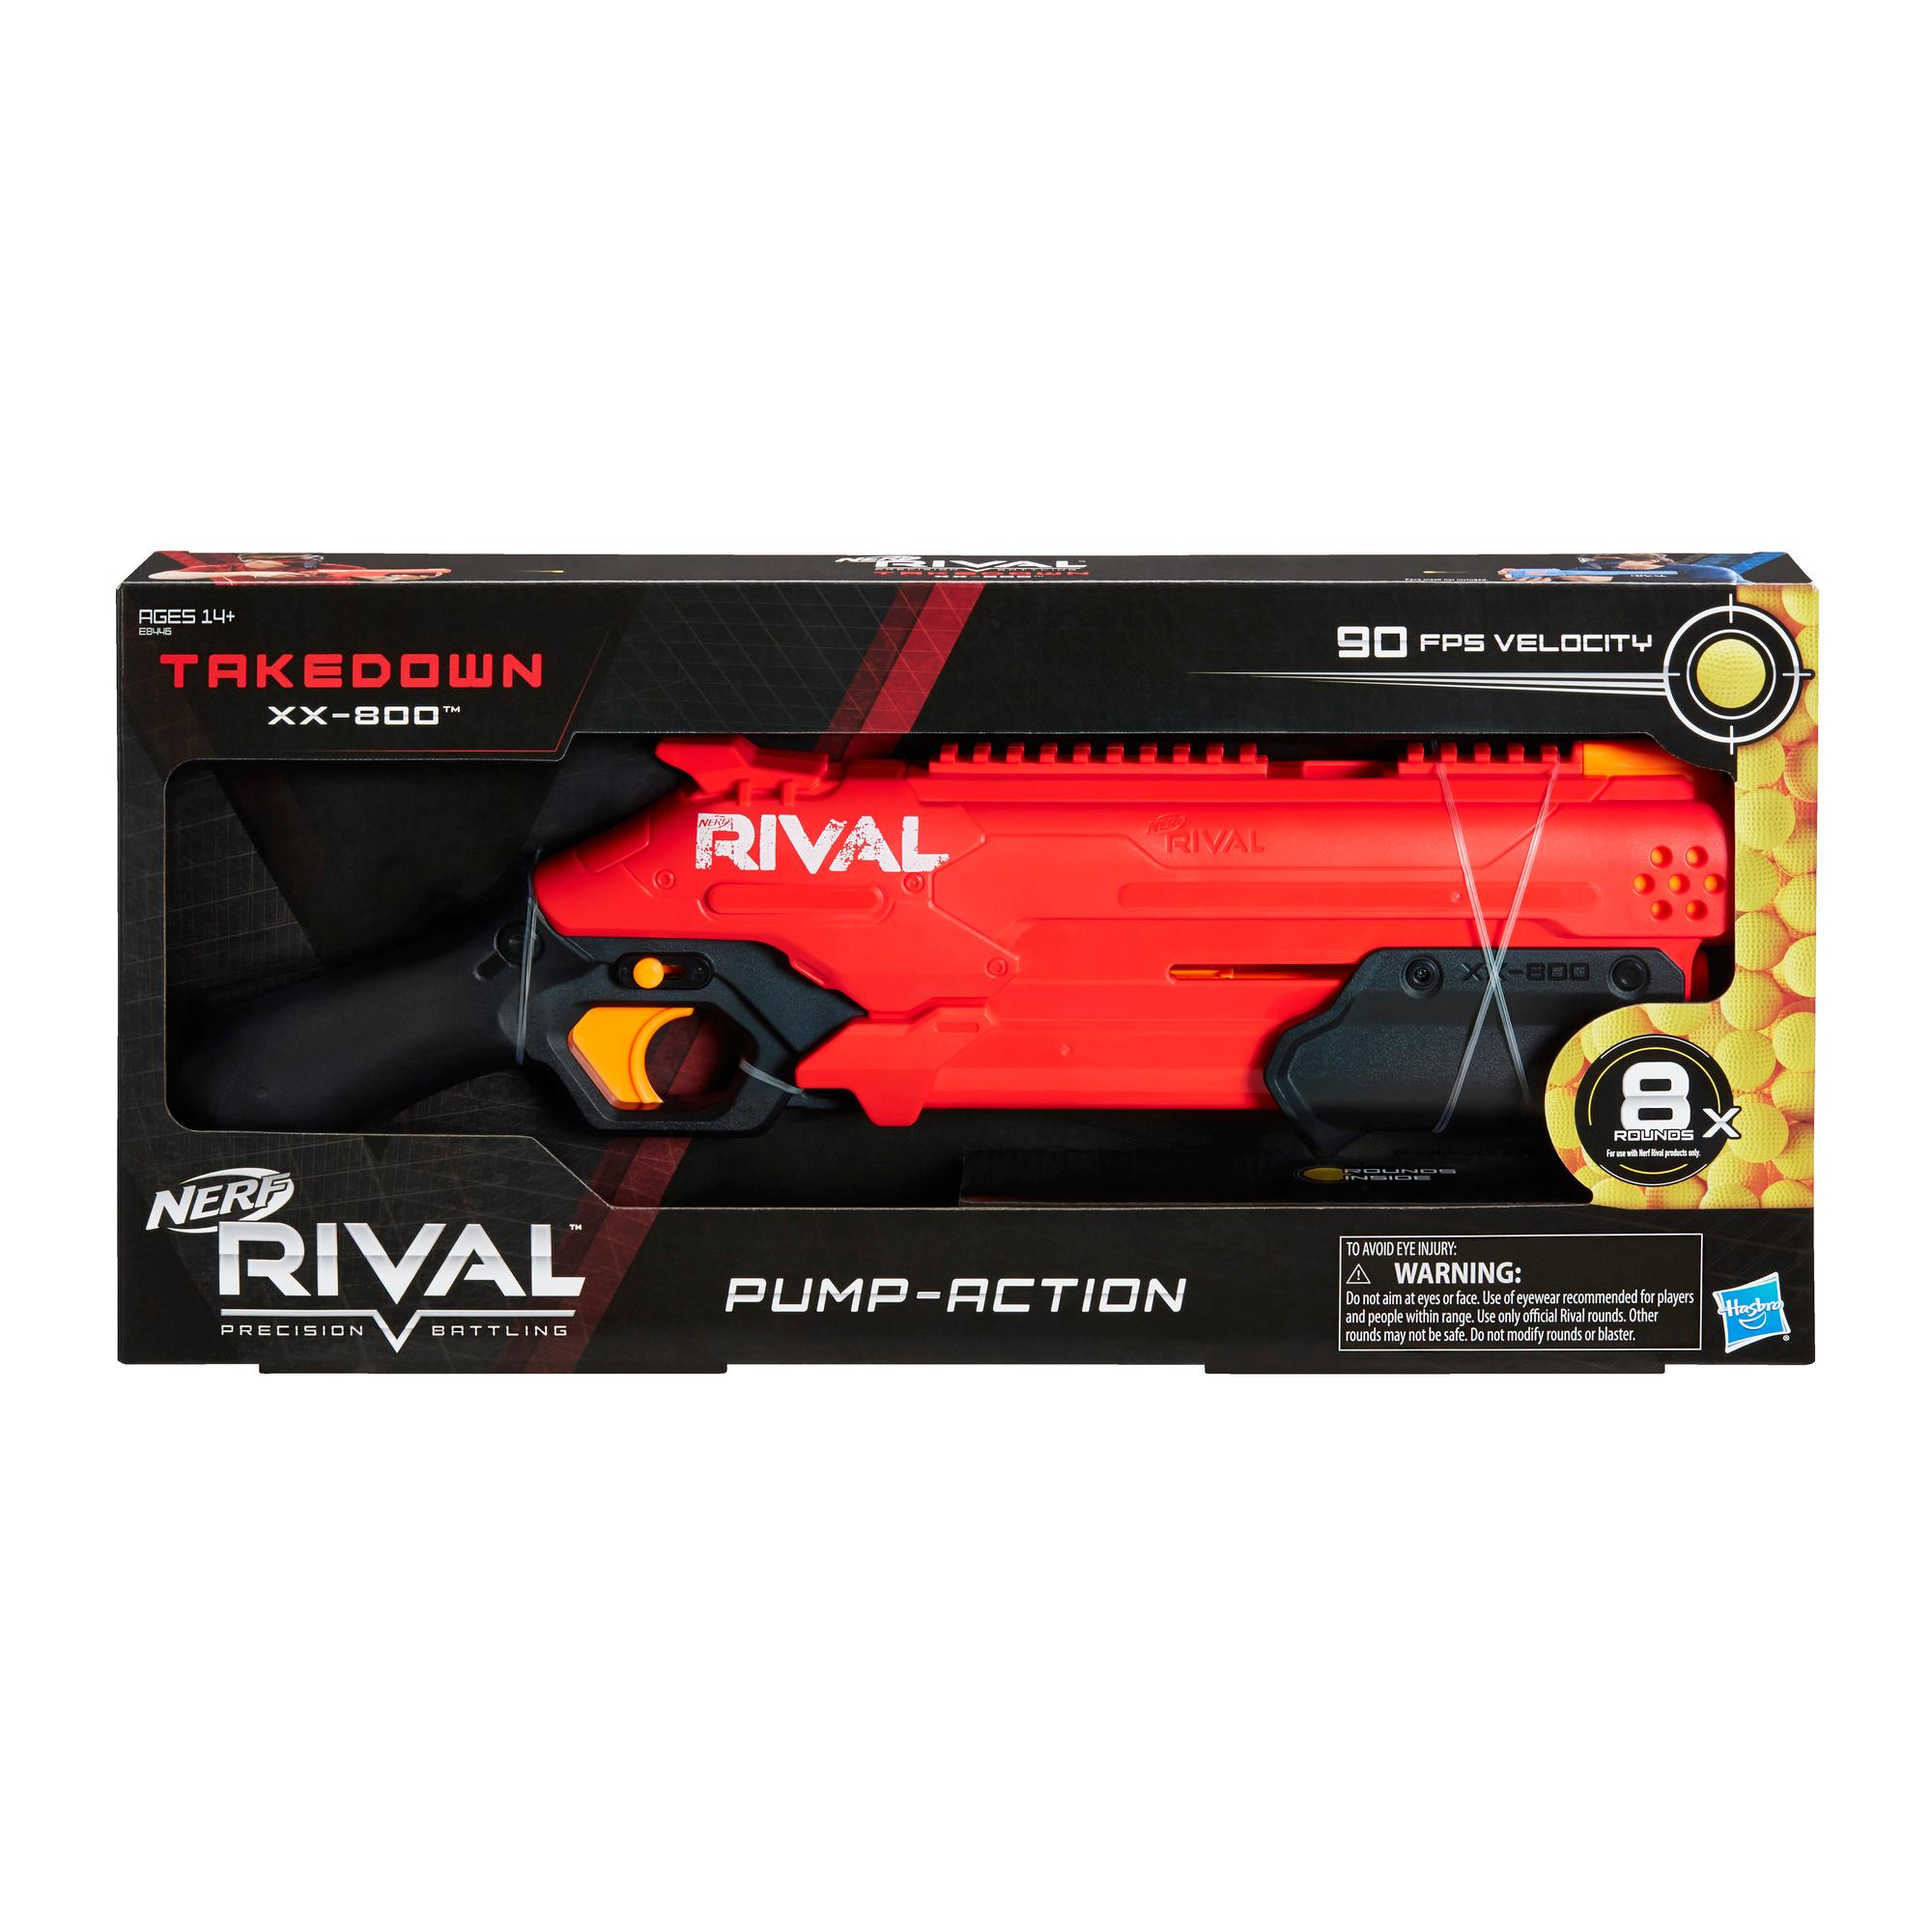 Nerf Rival Takedown XX-800 Blaster -- Pump Action, Breech-Load, 8-Round Capacity, 90 FPS, 8 Nerf Rival Rounds, Team Red